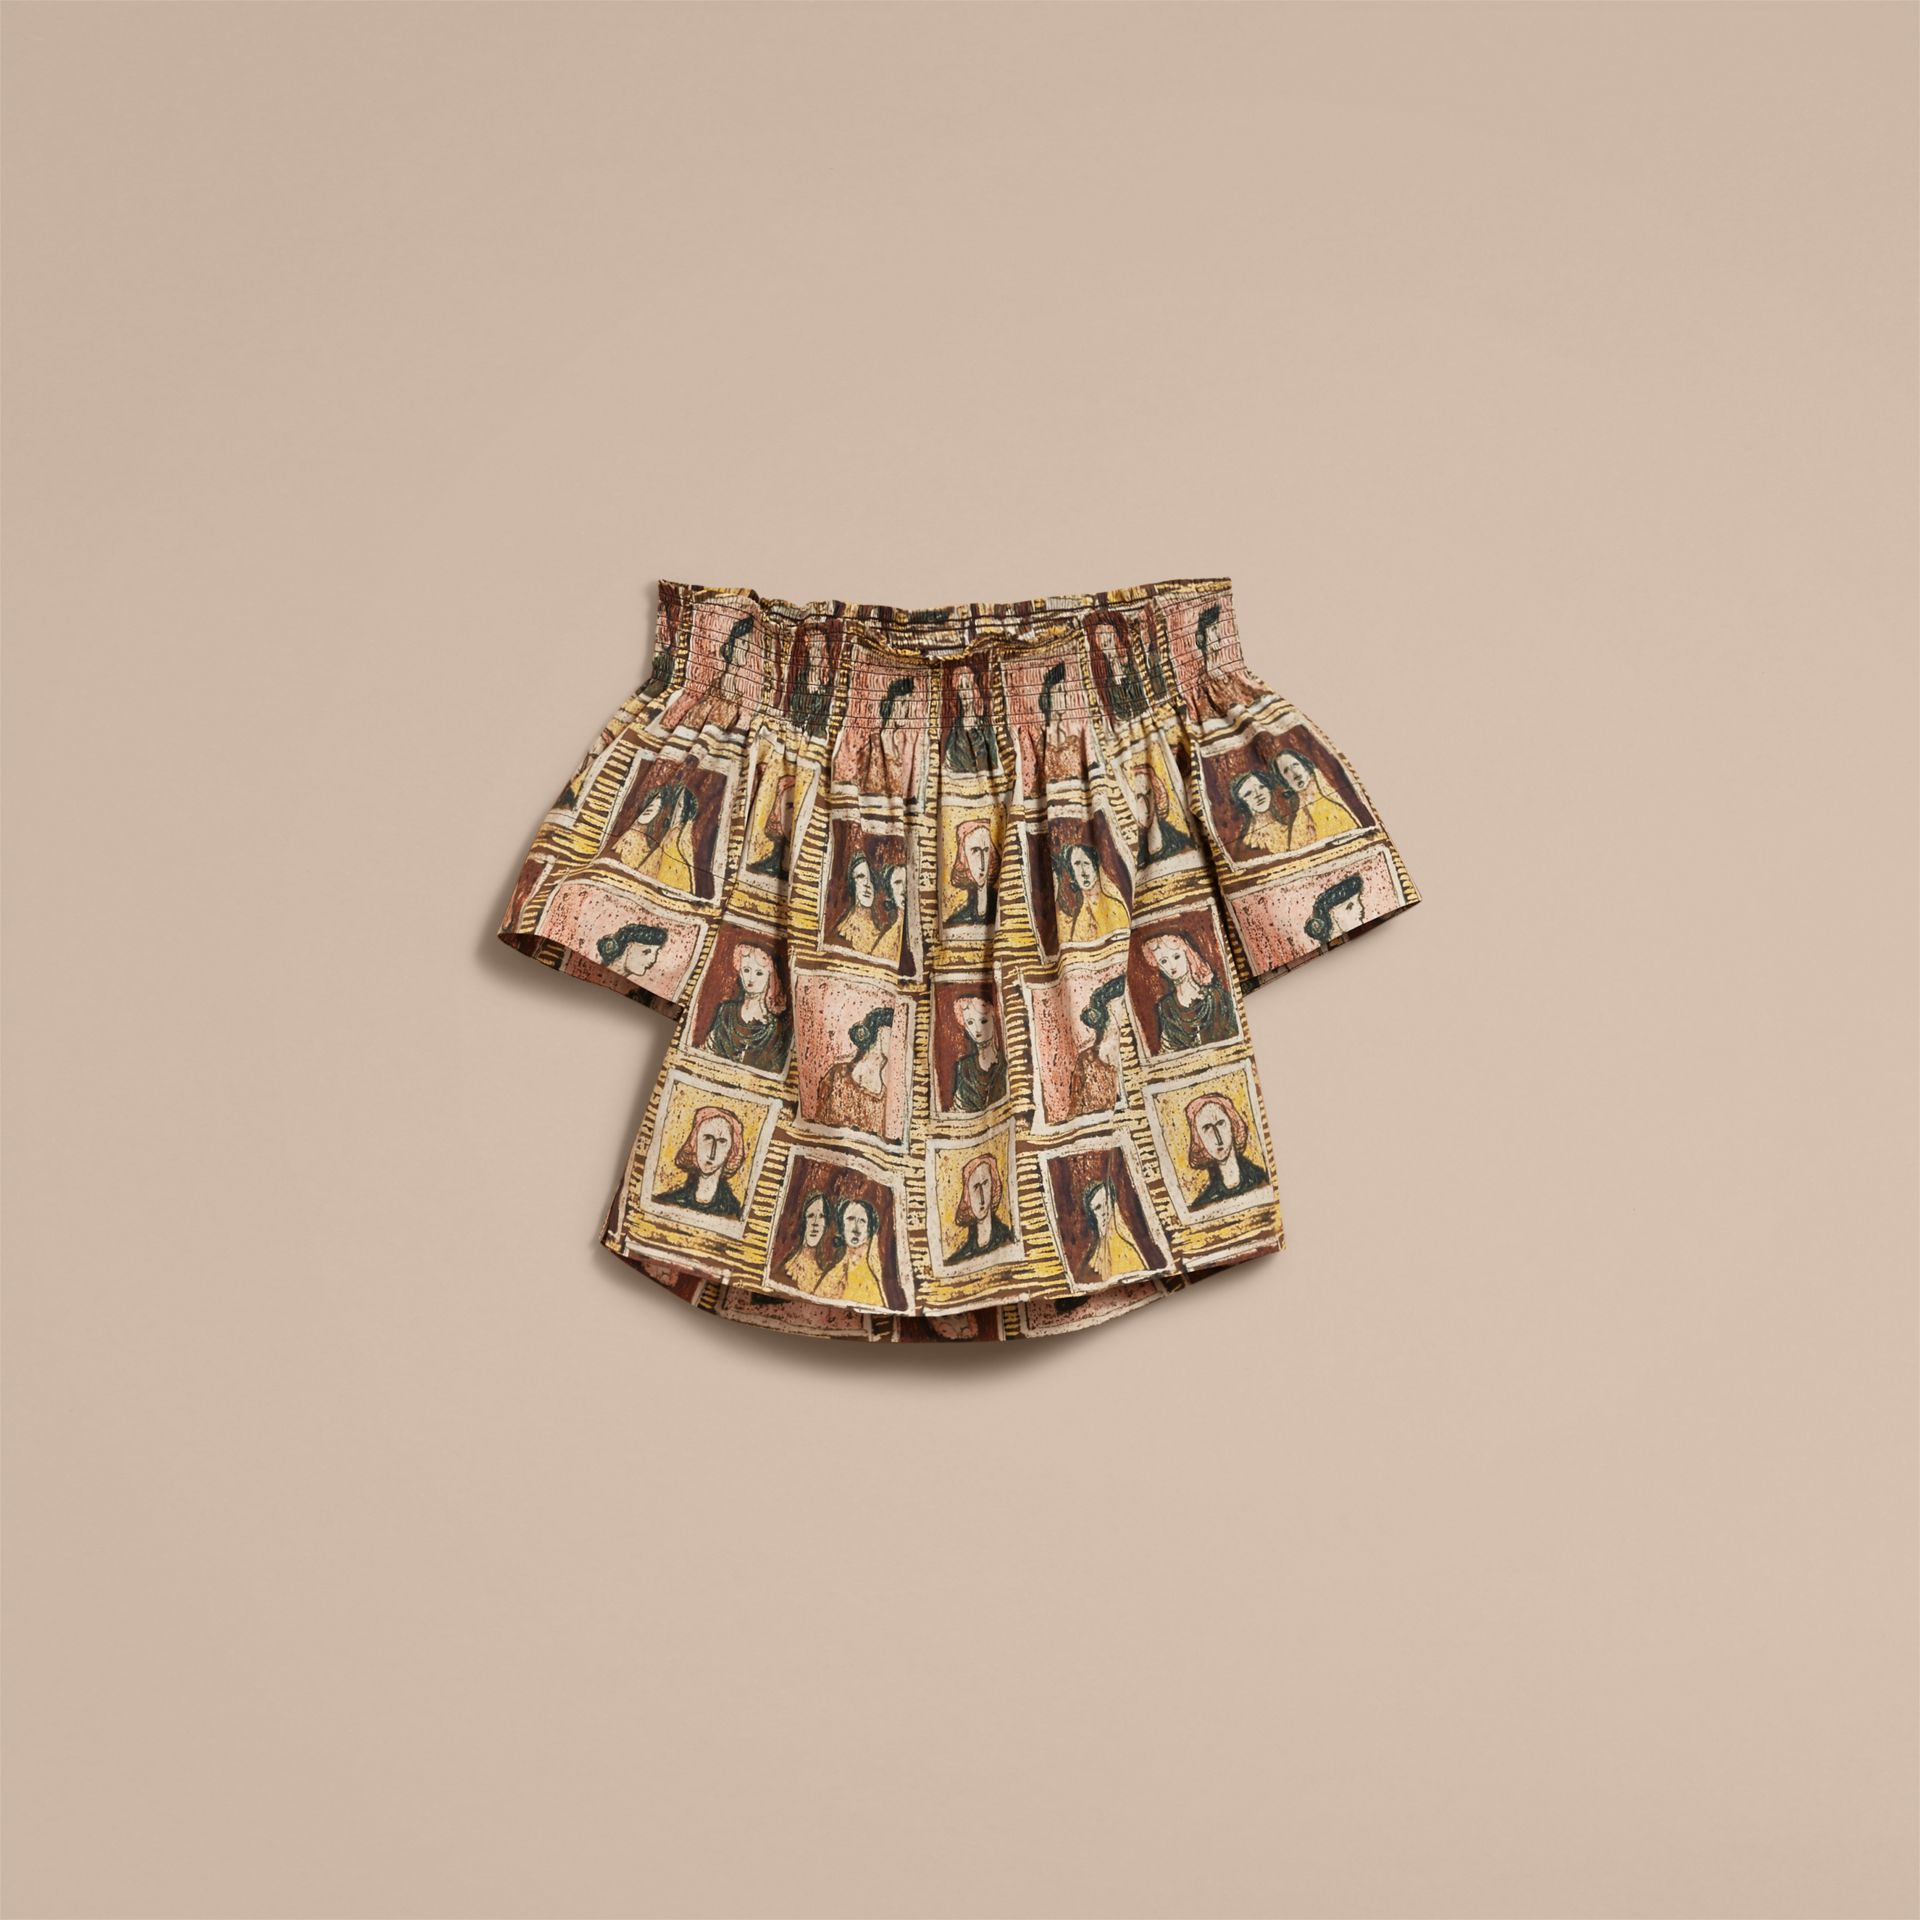 Off-the-shoulder Framed Heads Print Cotton Top in Umber Brown - Women | Burberry - gallery image 4